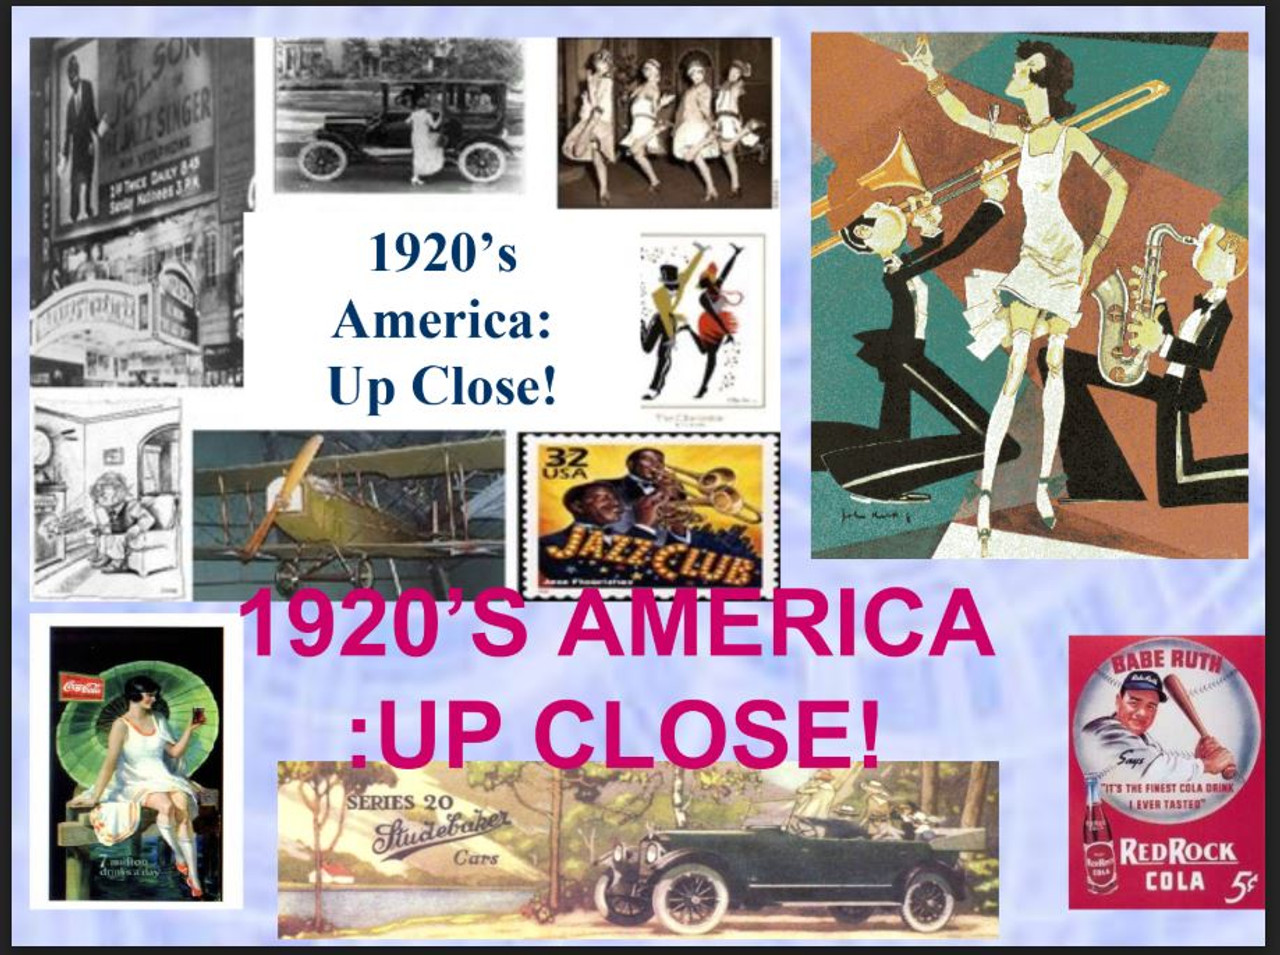 The 1920's America: Up Close